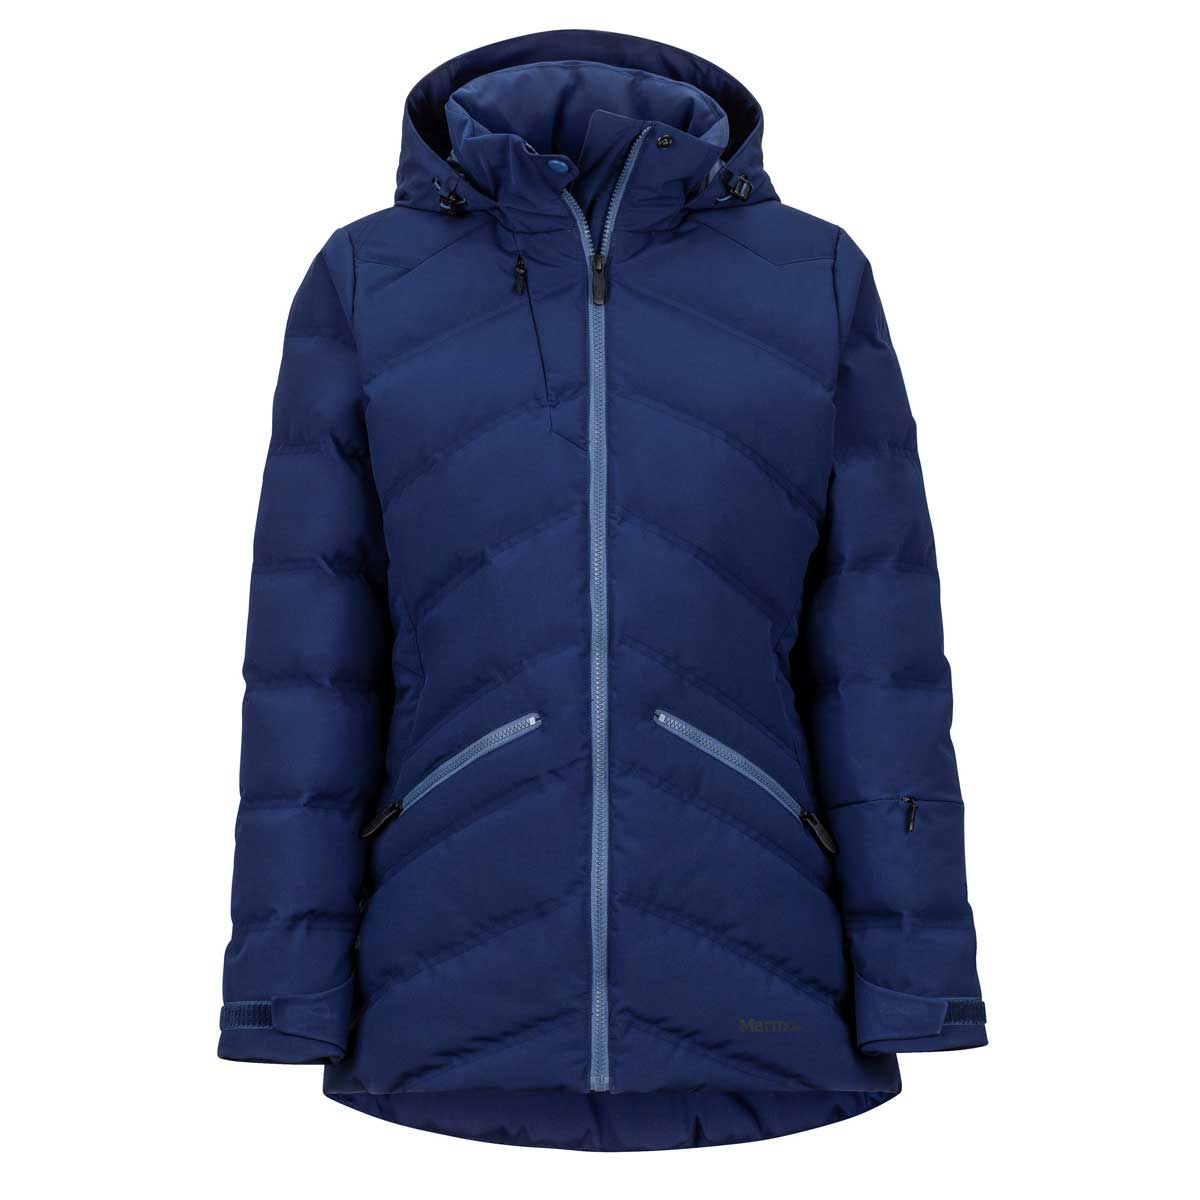 Marmot Women's Val D'Sere Jacket in Arctic Navy